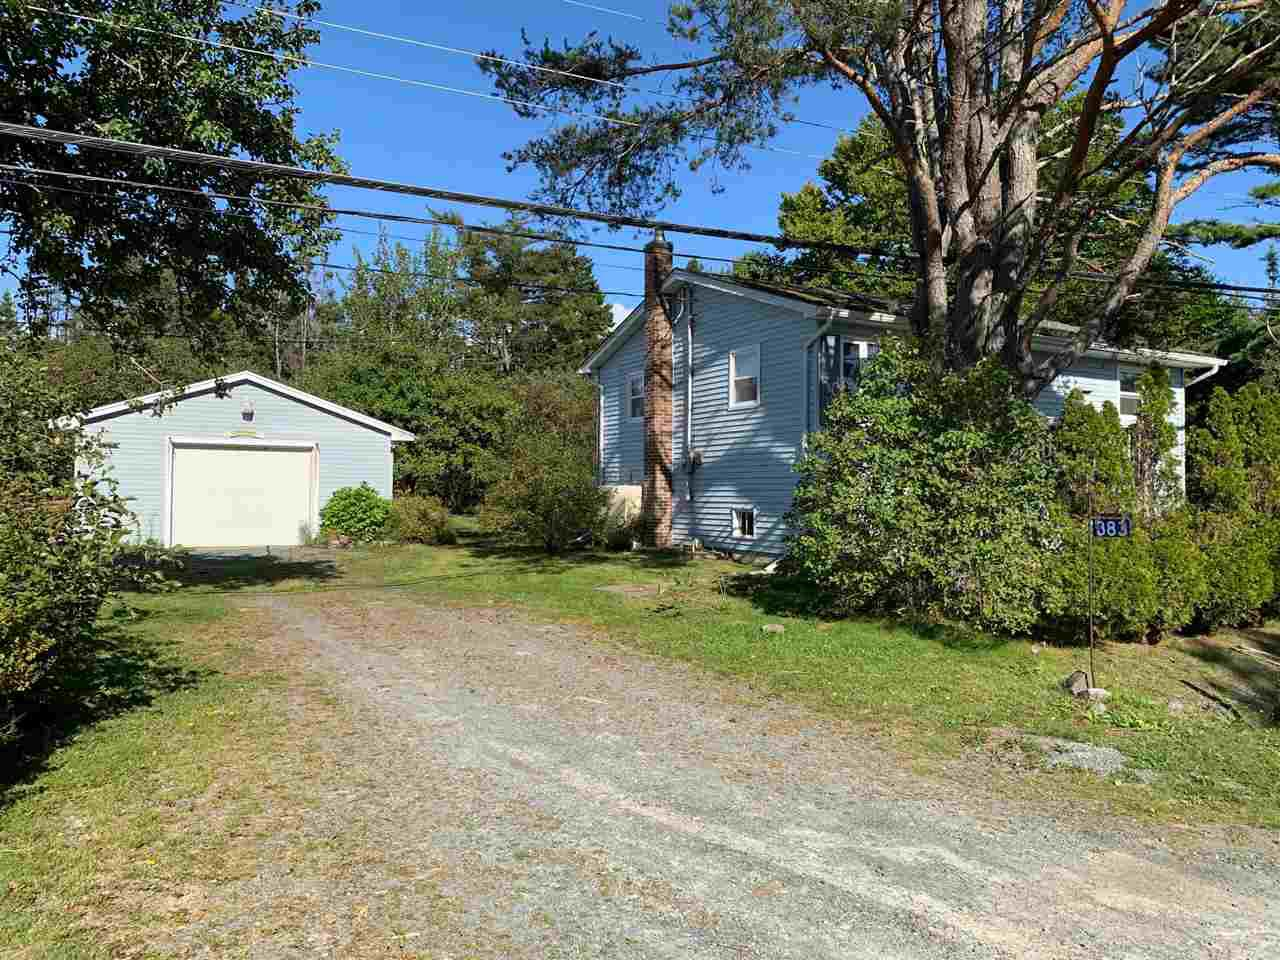 Main Photo: 383 Bellefontaine Road in West Chezzetcook: 31-Lawrencetown, Lake Echo, Porters Lake Residential for sale (Halifax-Dartmouth)  : MLS®# 202021251